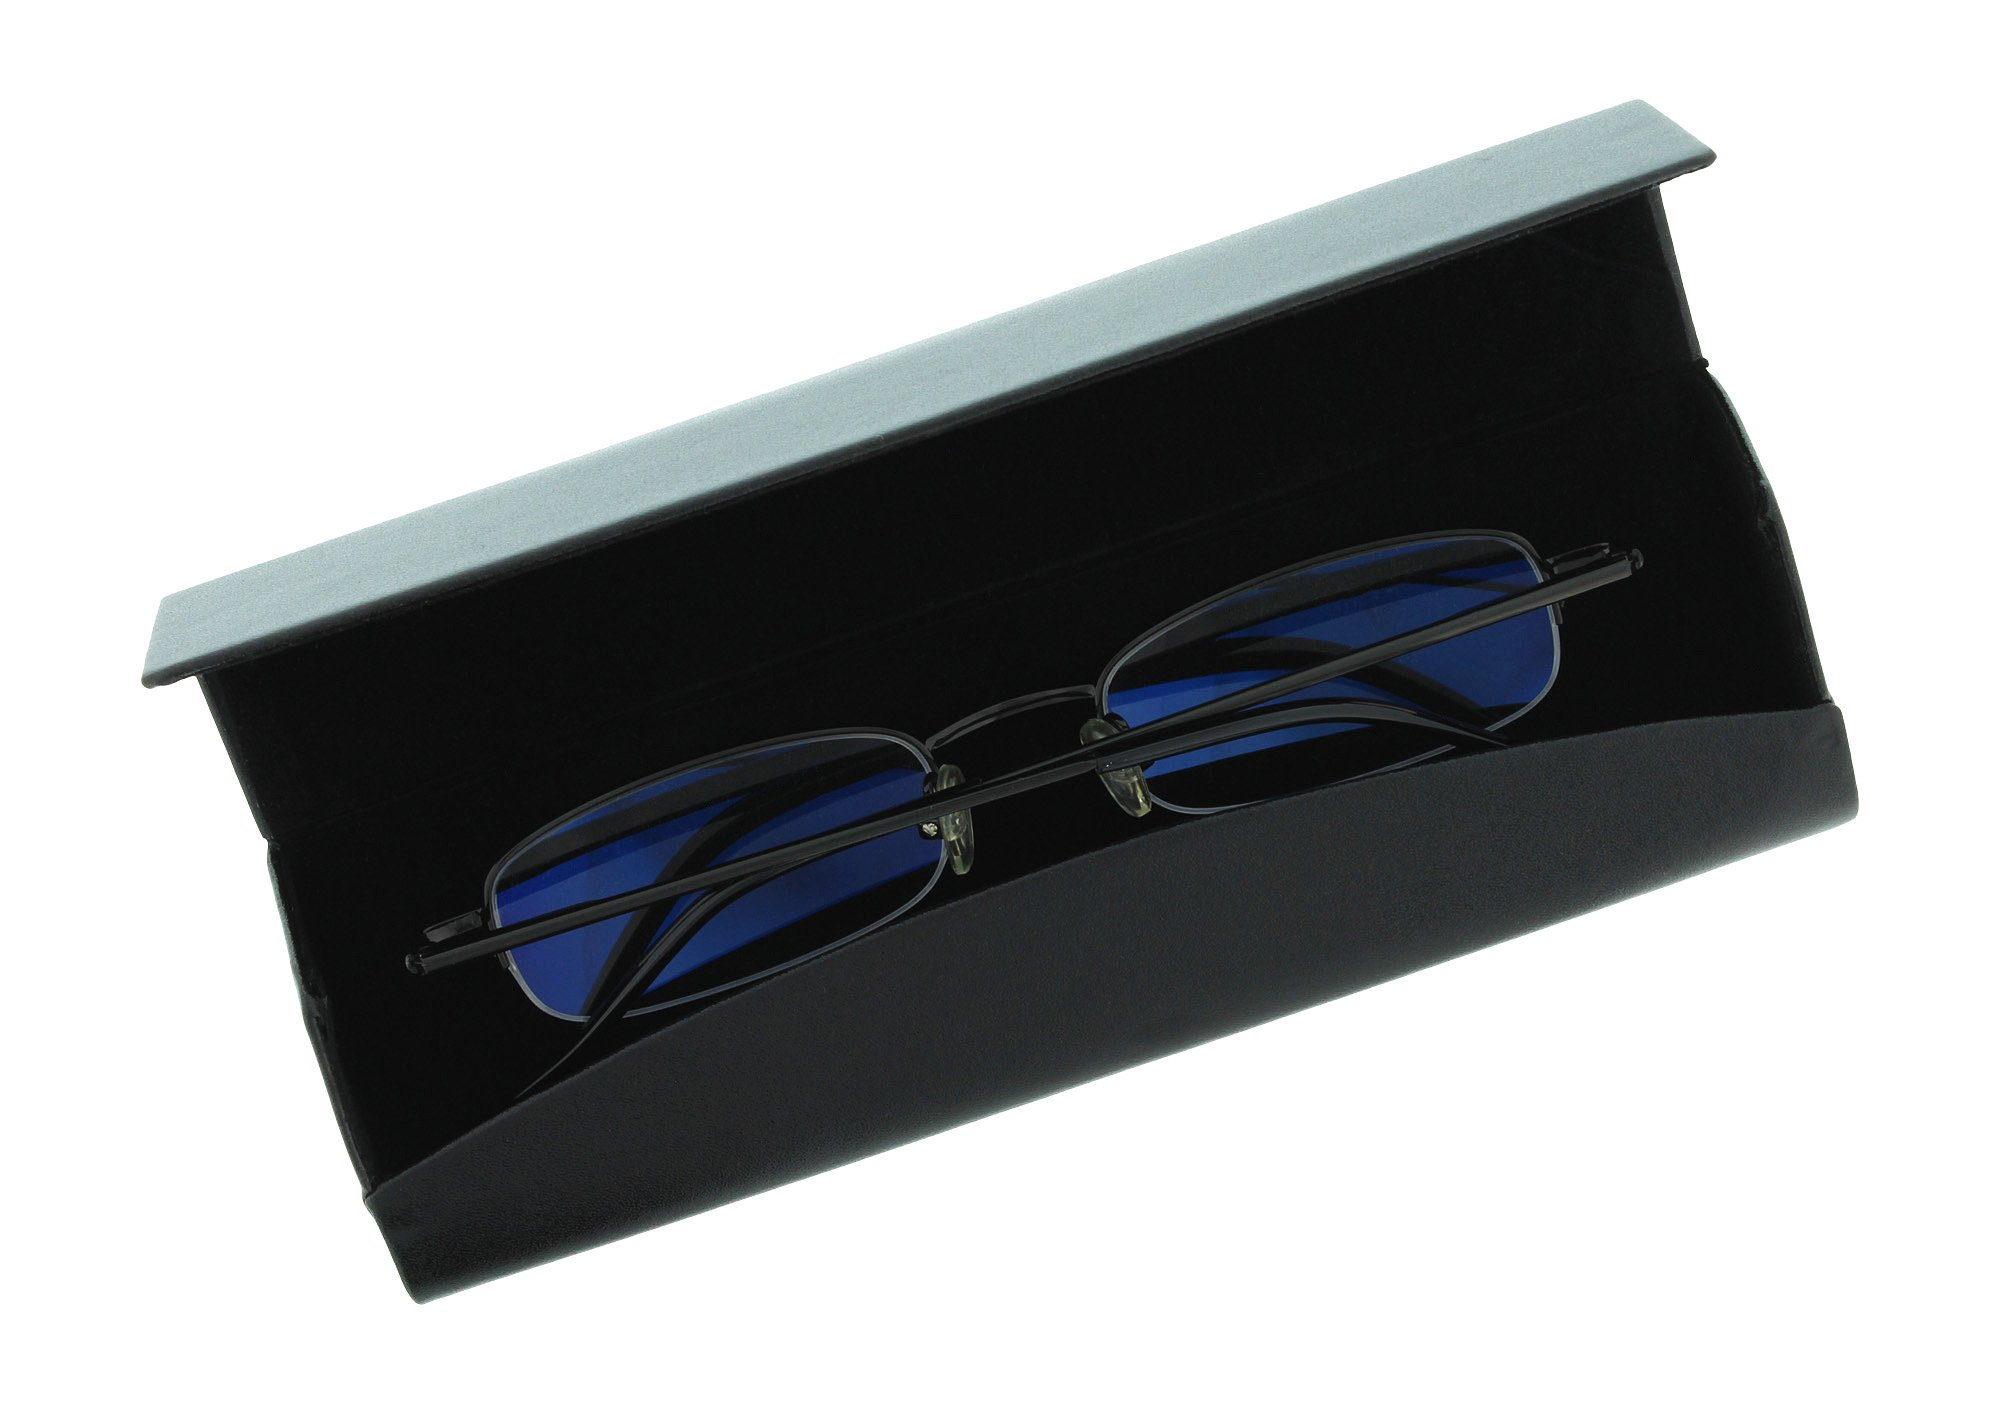 Smooth Faux Leather Eyeglass Case Magnetic Front Closure Black Fits Small Frames by Ron's Optical (Image #2)